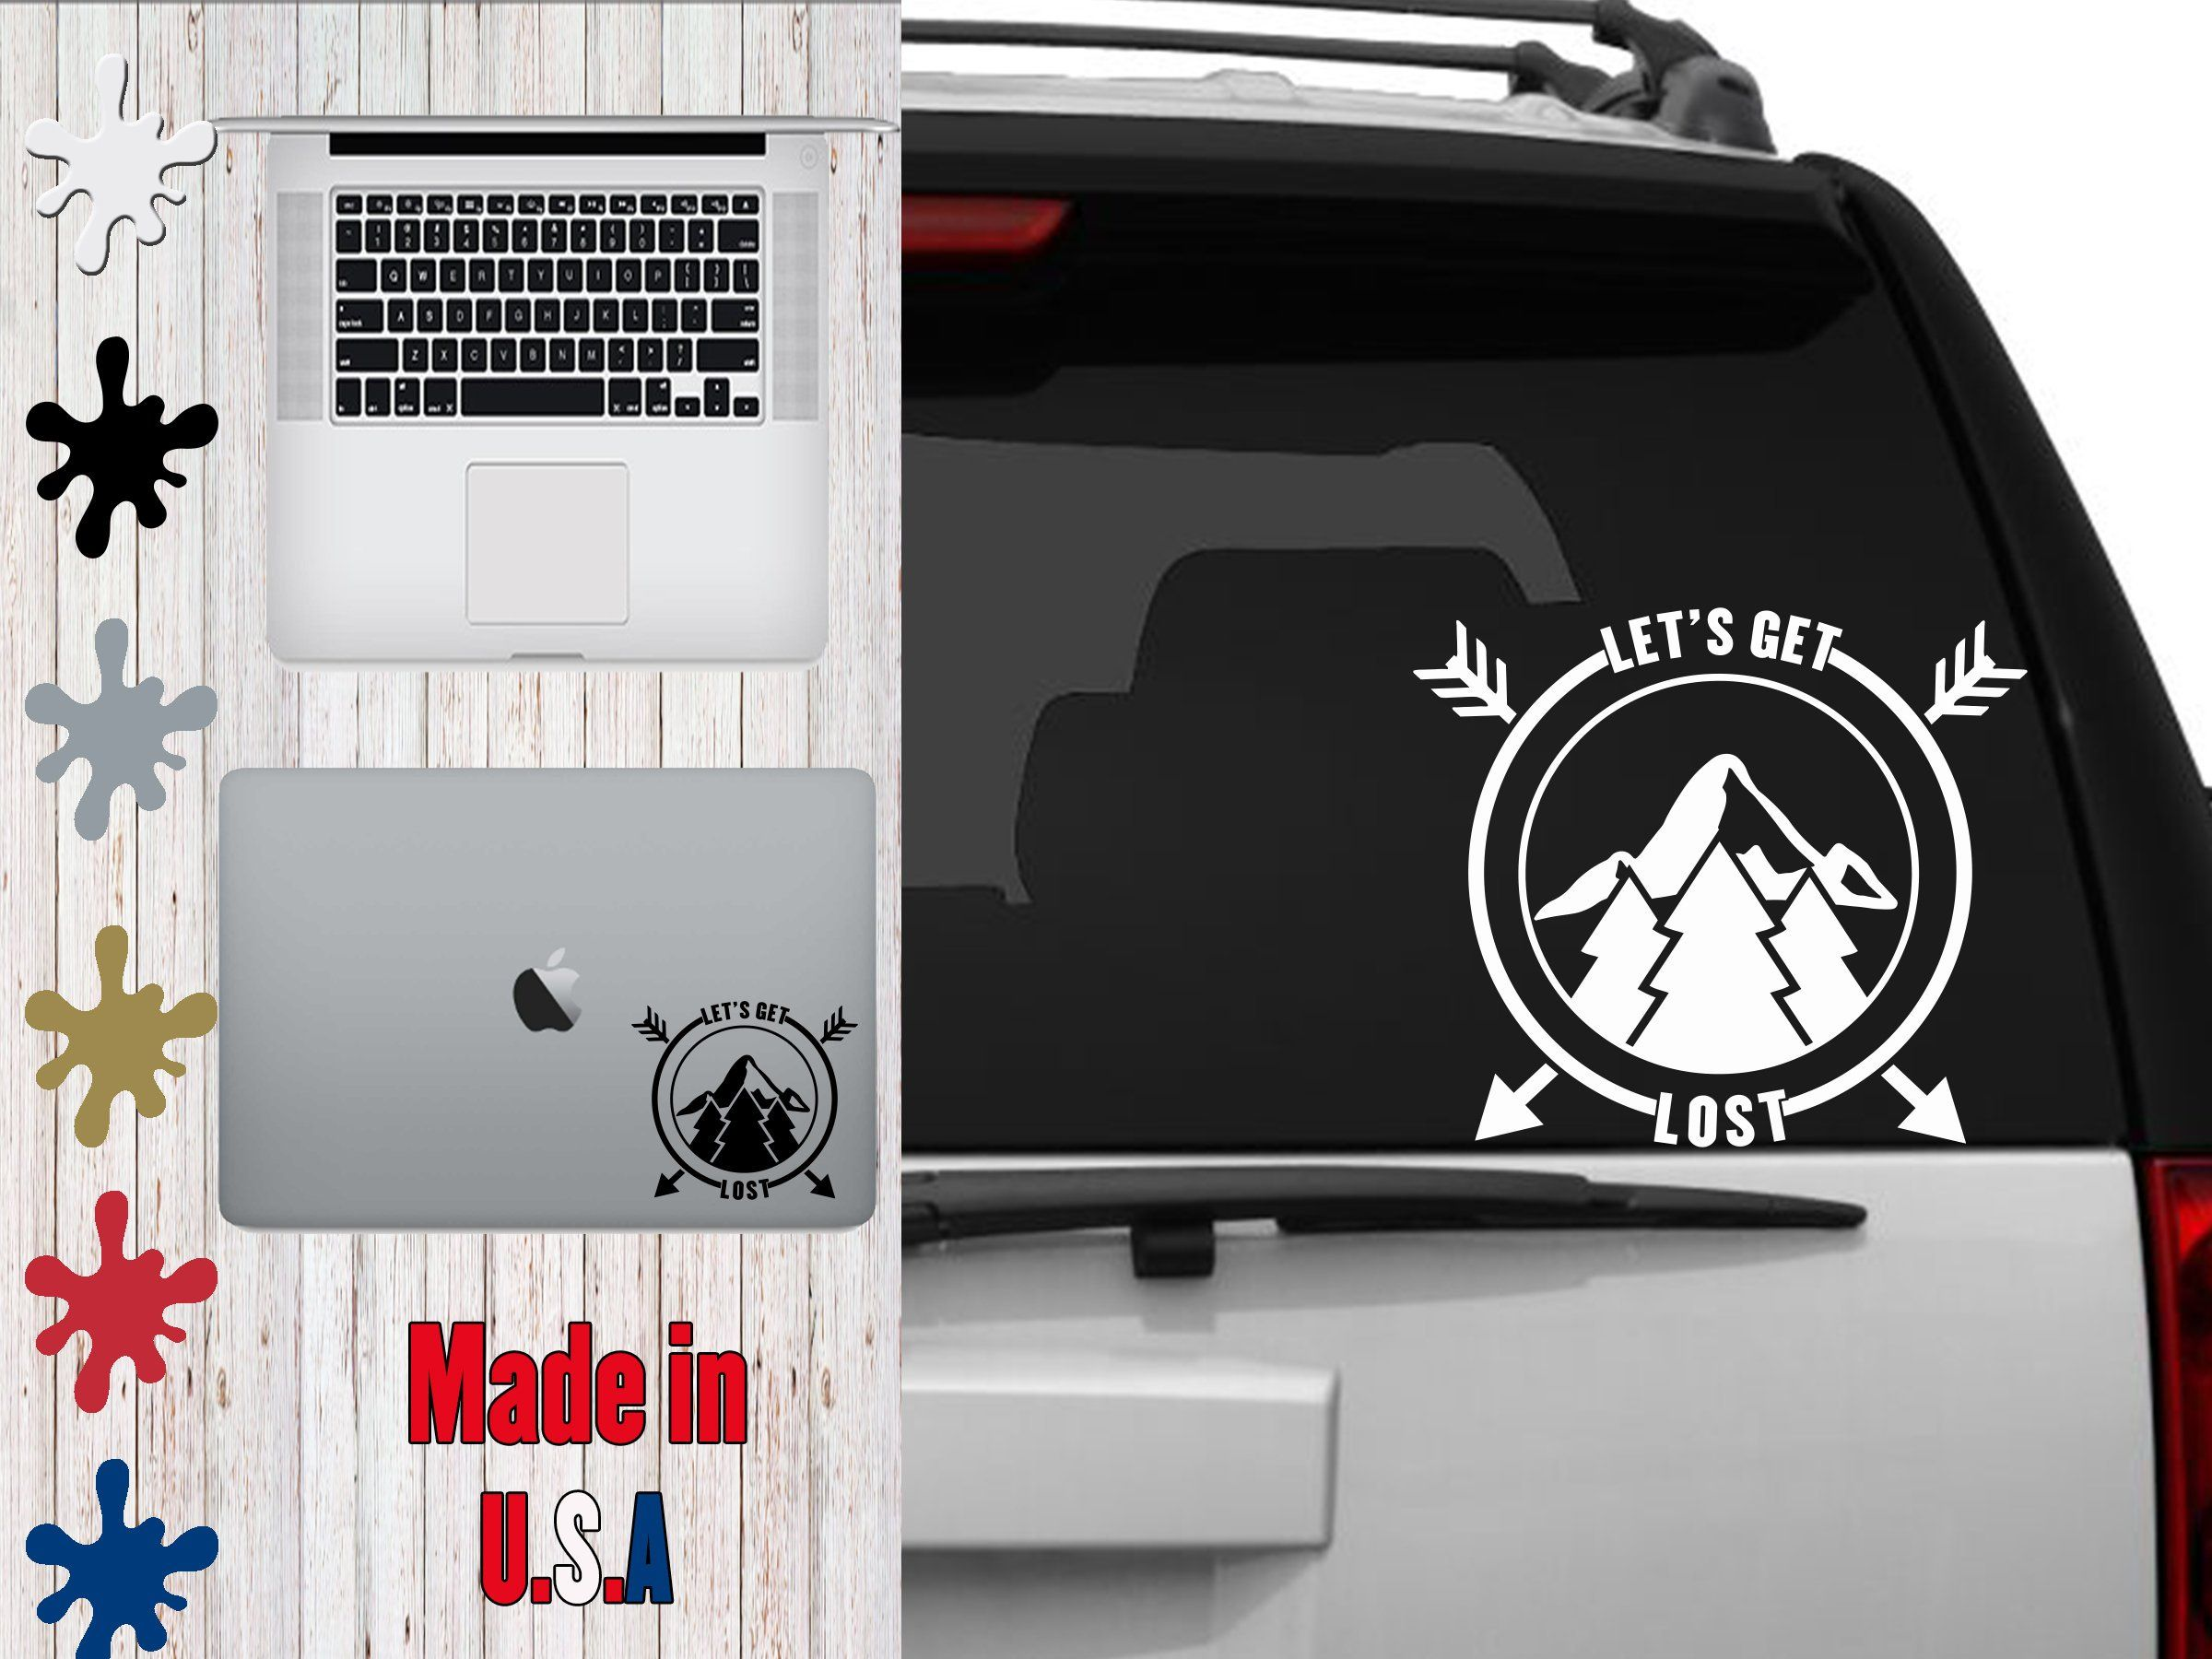 Let S Get Lost Car Decal Choose Your Size Car Decal Laptop Decal Mug Decal Tumbler Decal Cup Decal Phone Decal By Phone Decals Tumbler Decal Cup Decal [ 1800 x 2400 Pixel ]